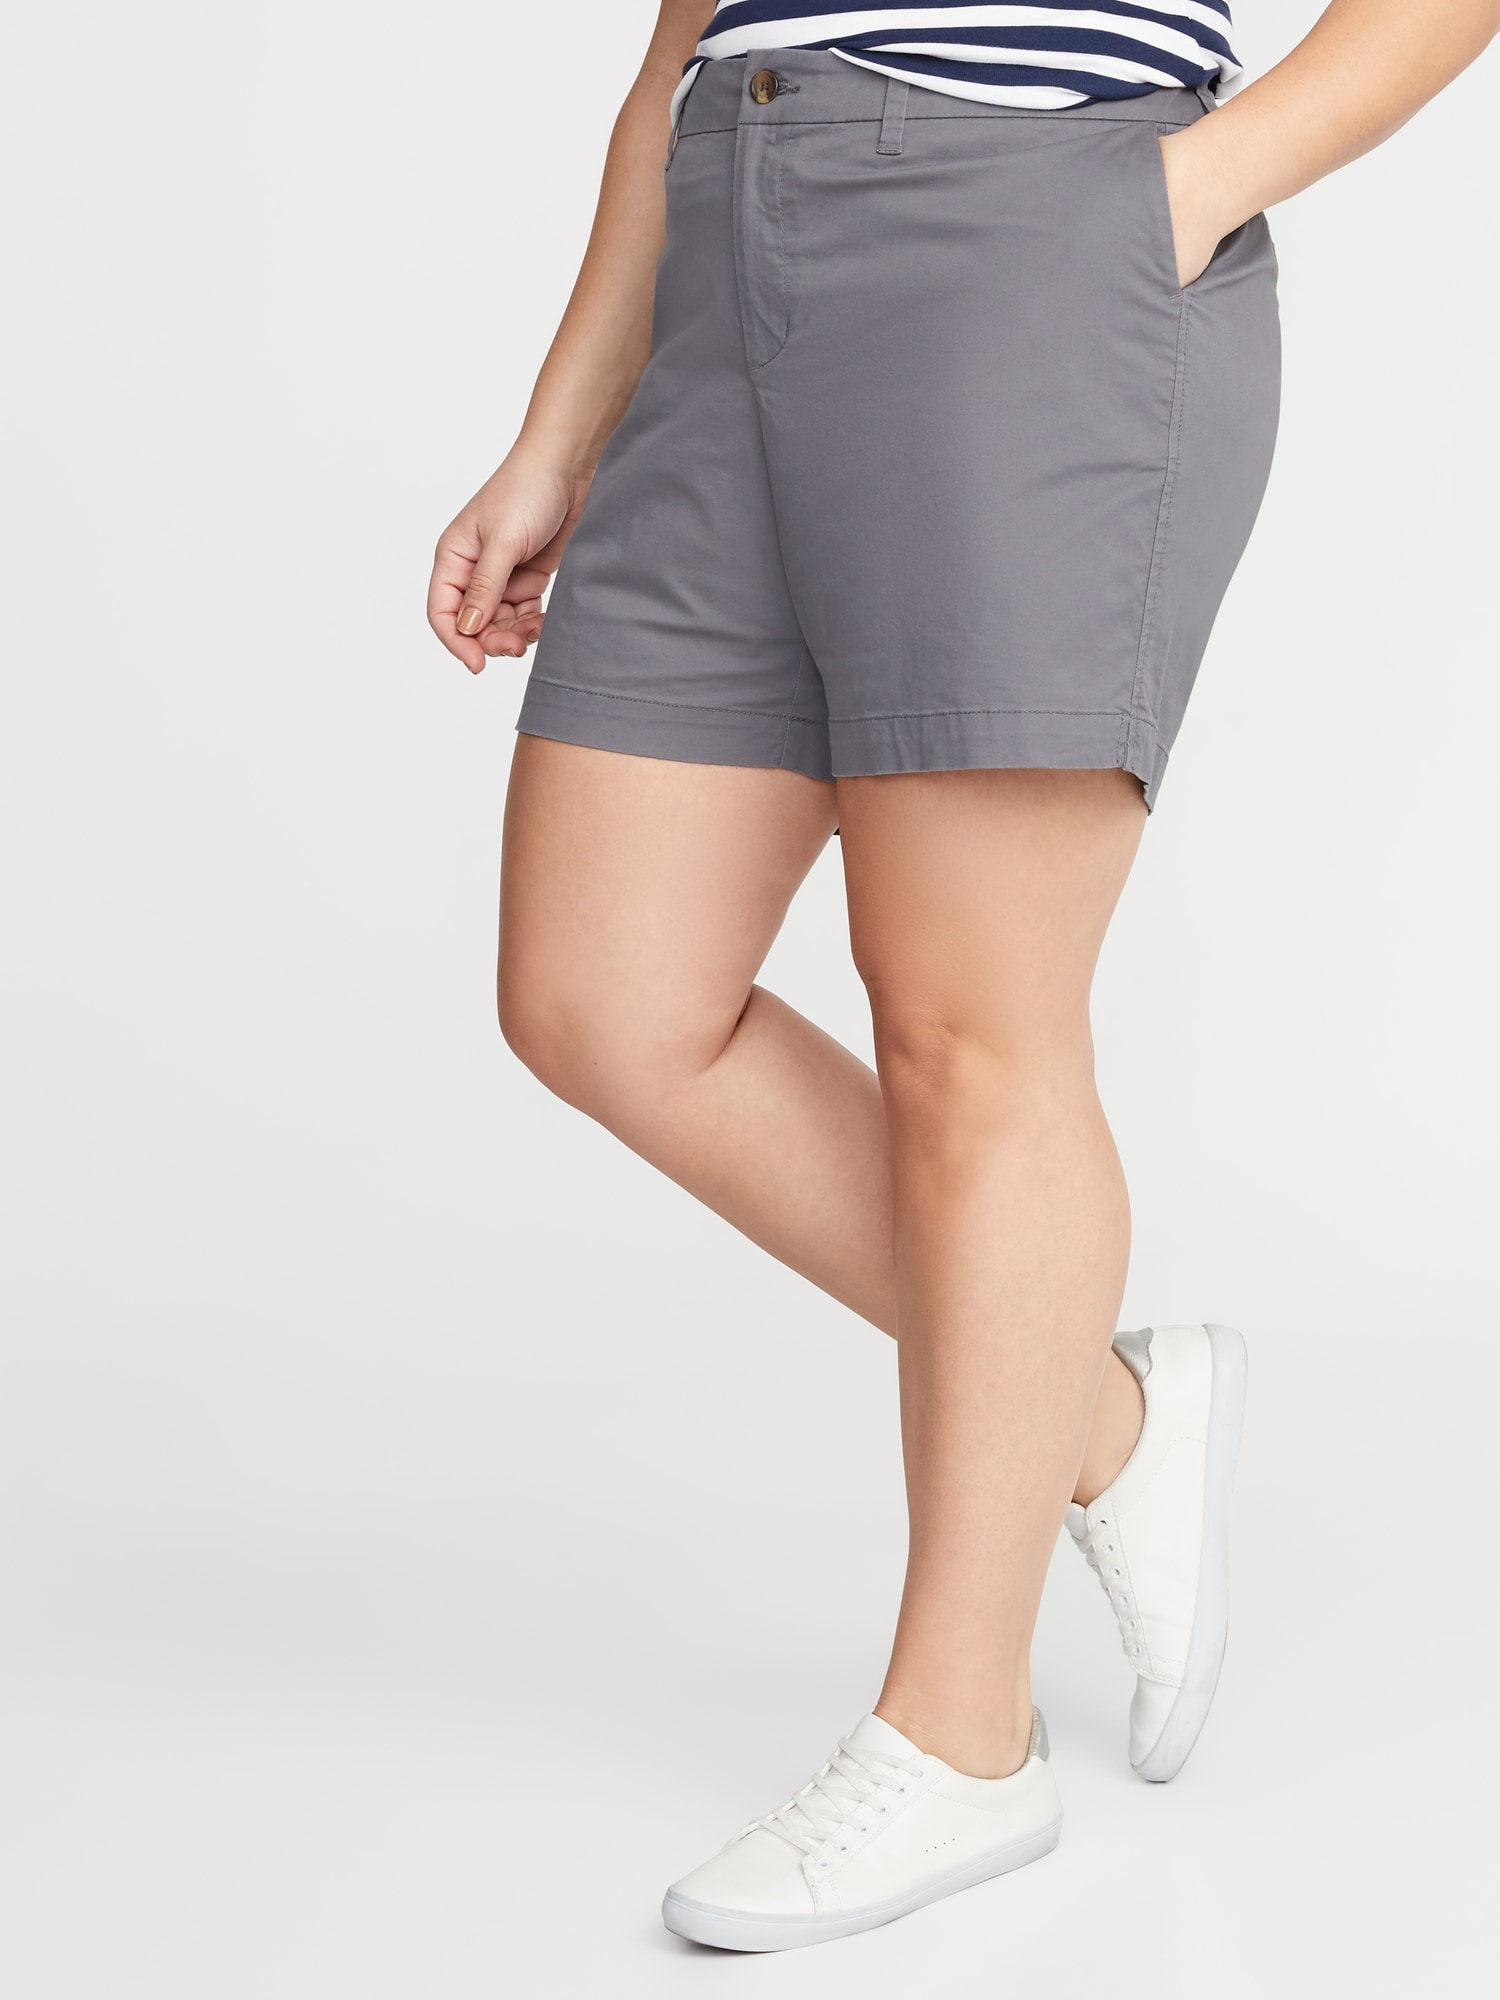 5d114d1ed4f Mid-Rise Plus-Size Twill Everyday Shorts - 7-inch inseam